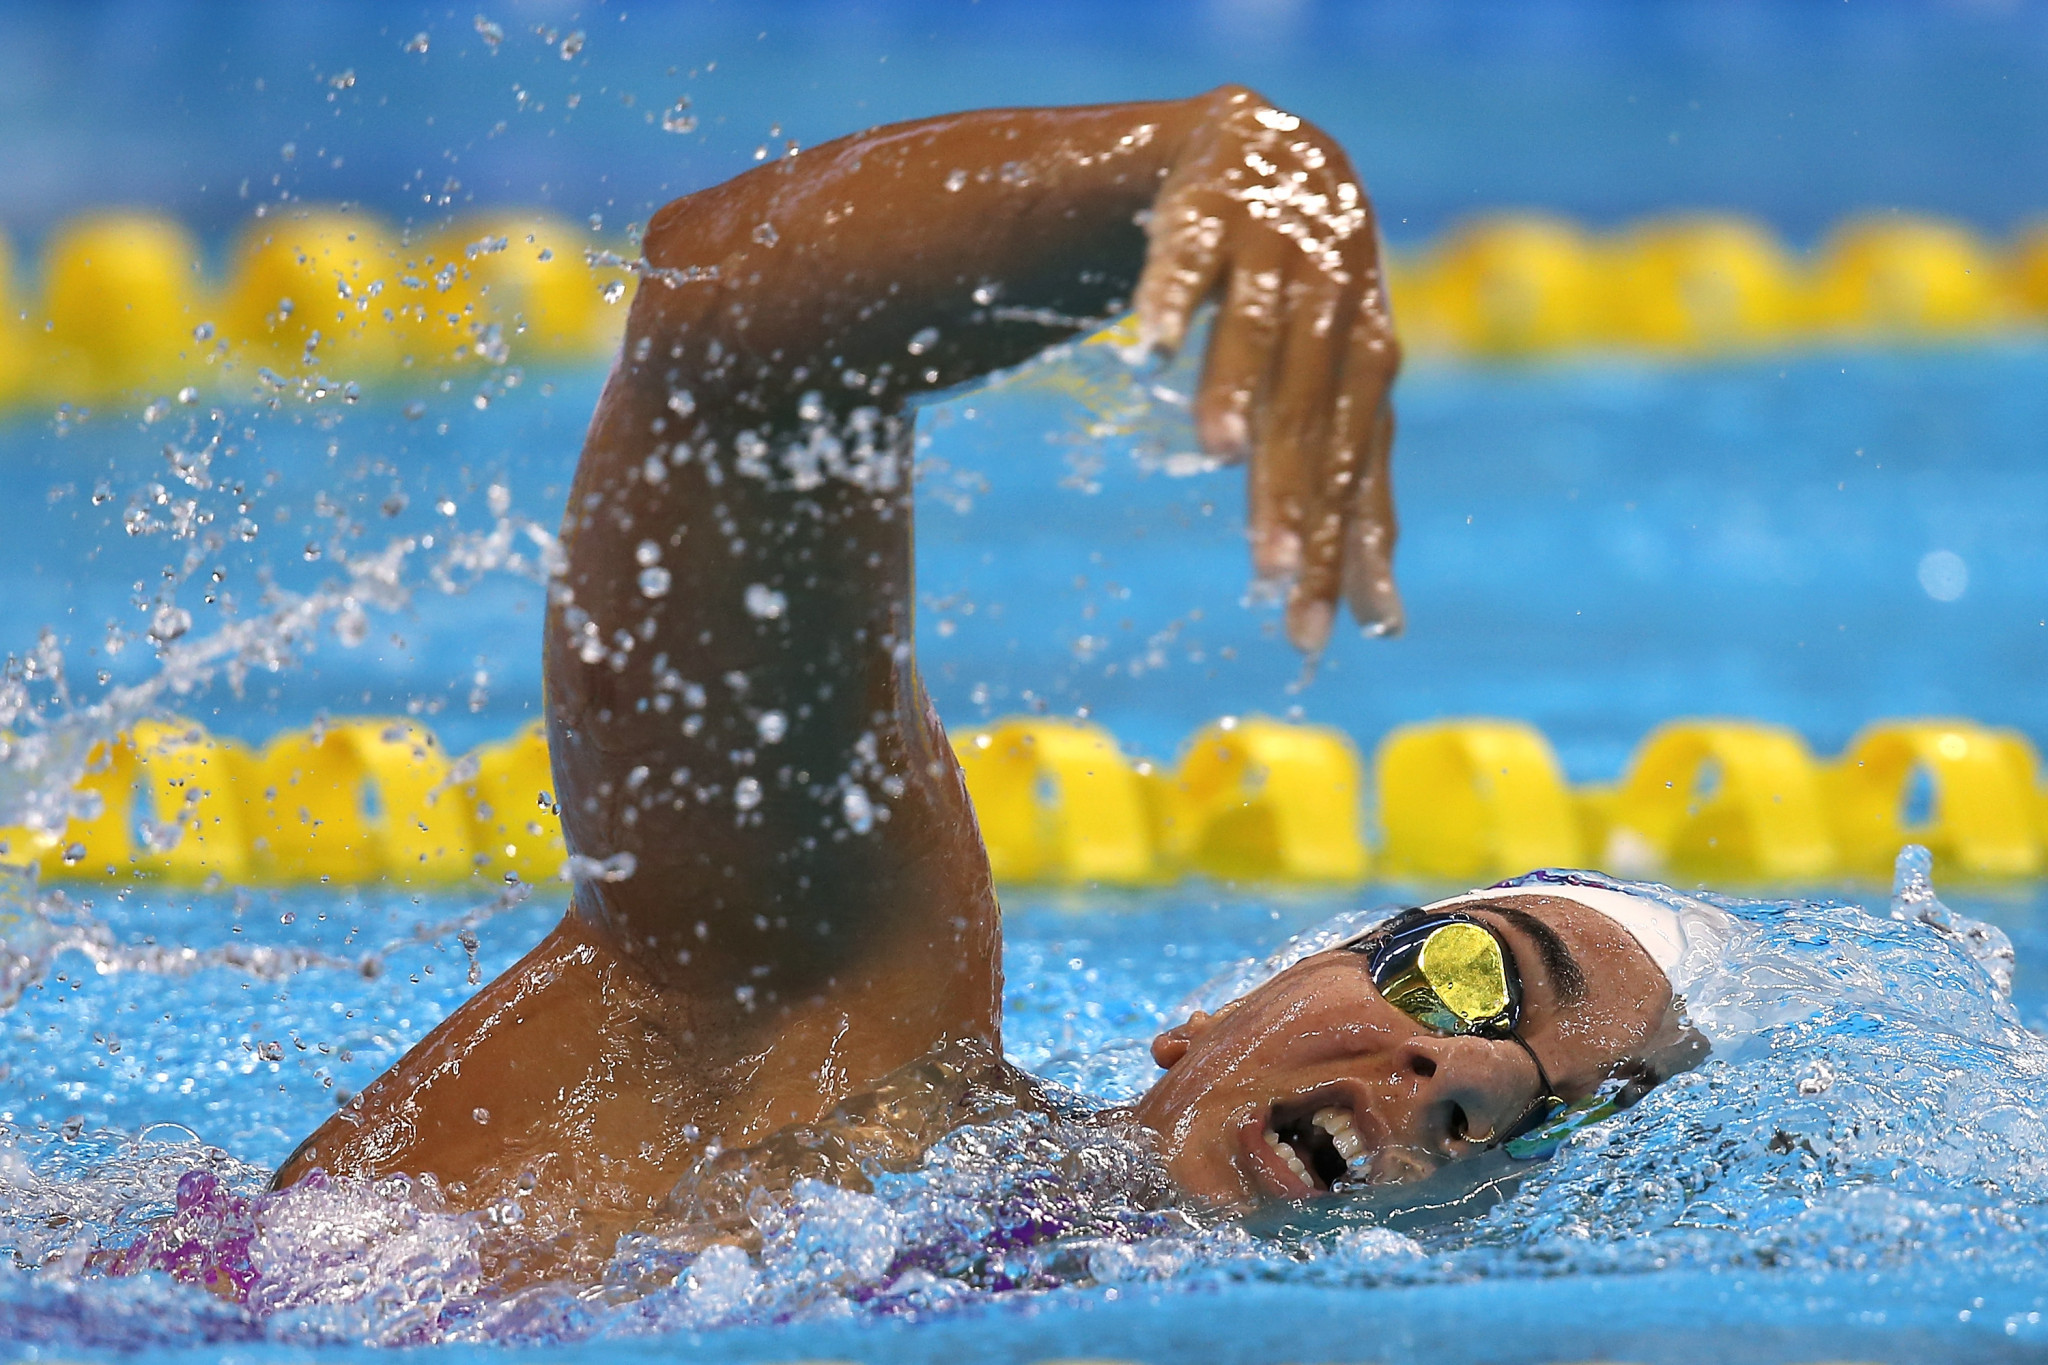 Alexandre Garrafa was the sport manager for Para-swimming at the Rio 2016 Paralympics ©Getty Images